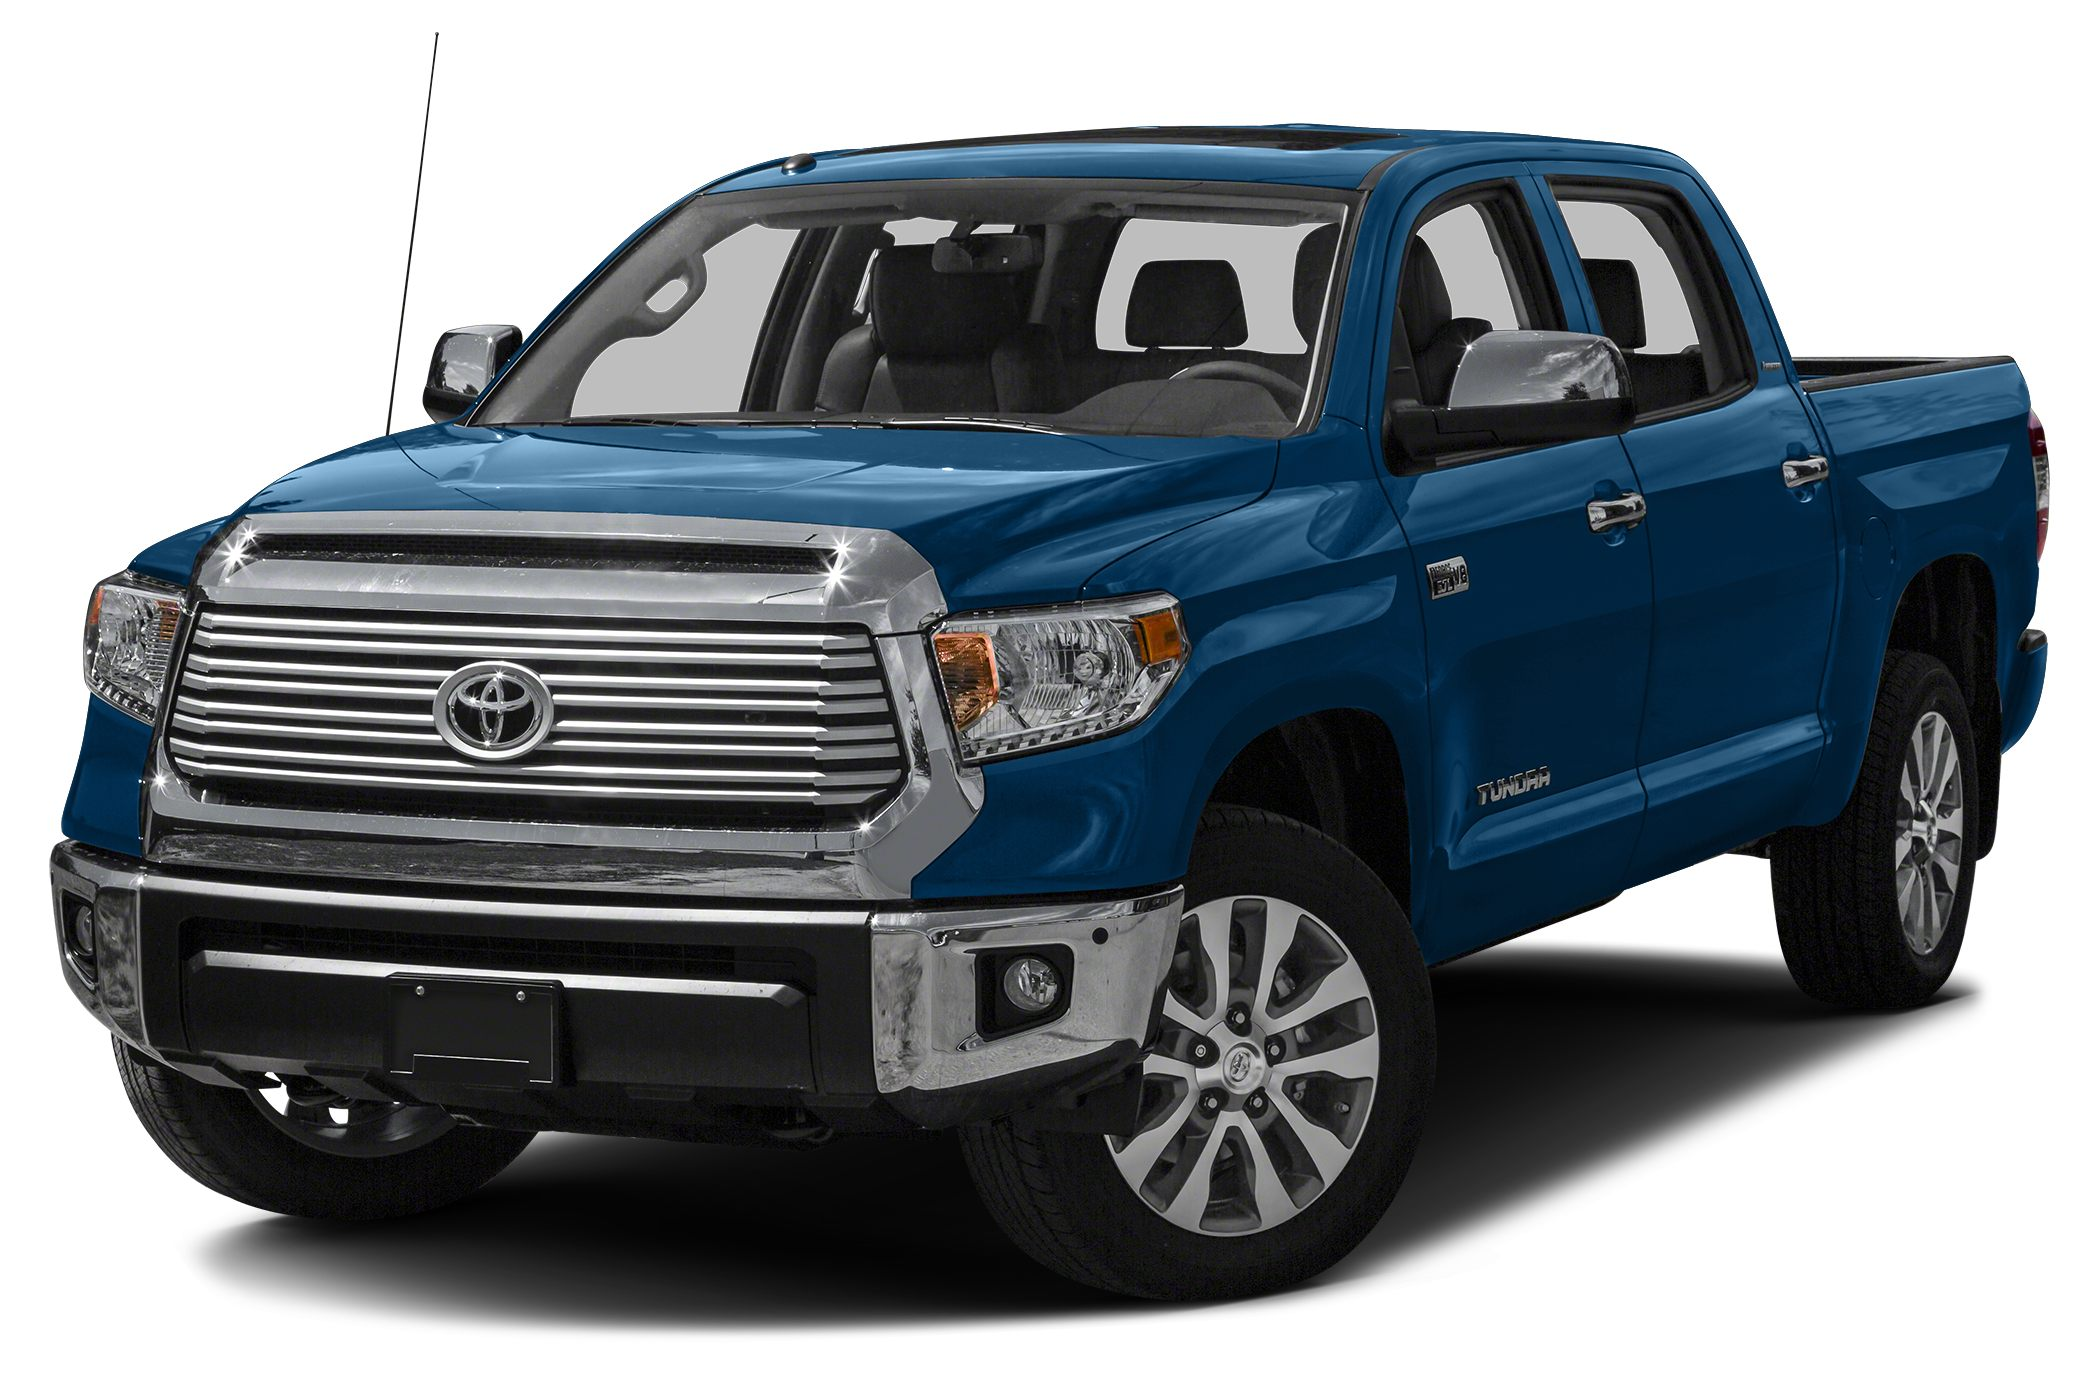 2016 Toyota Tundra Limited PRICED TO MOVE 1800 below Kelley Blue Book CARFAX 1-Owner ONLY 170